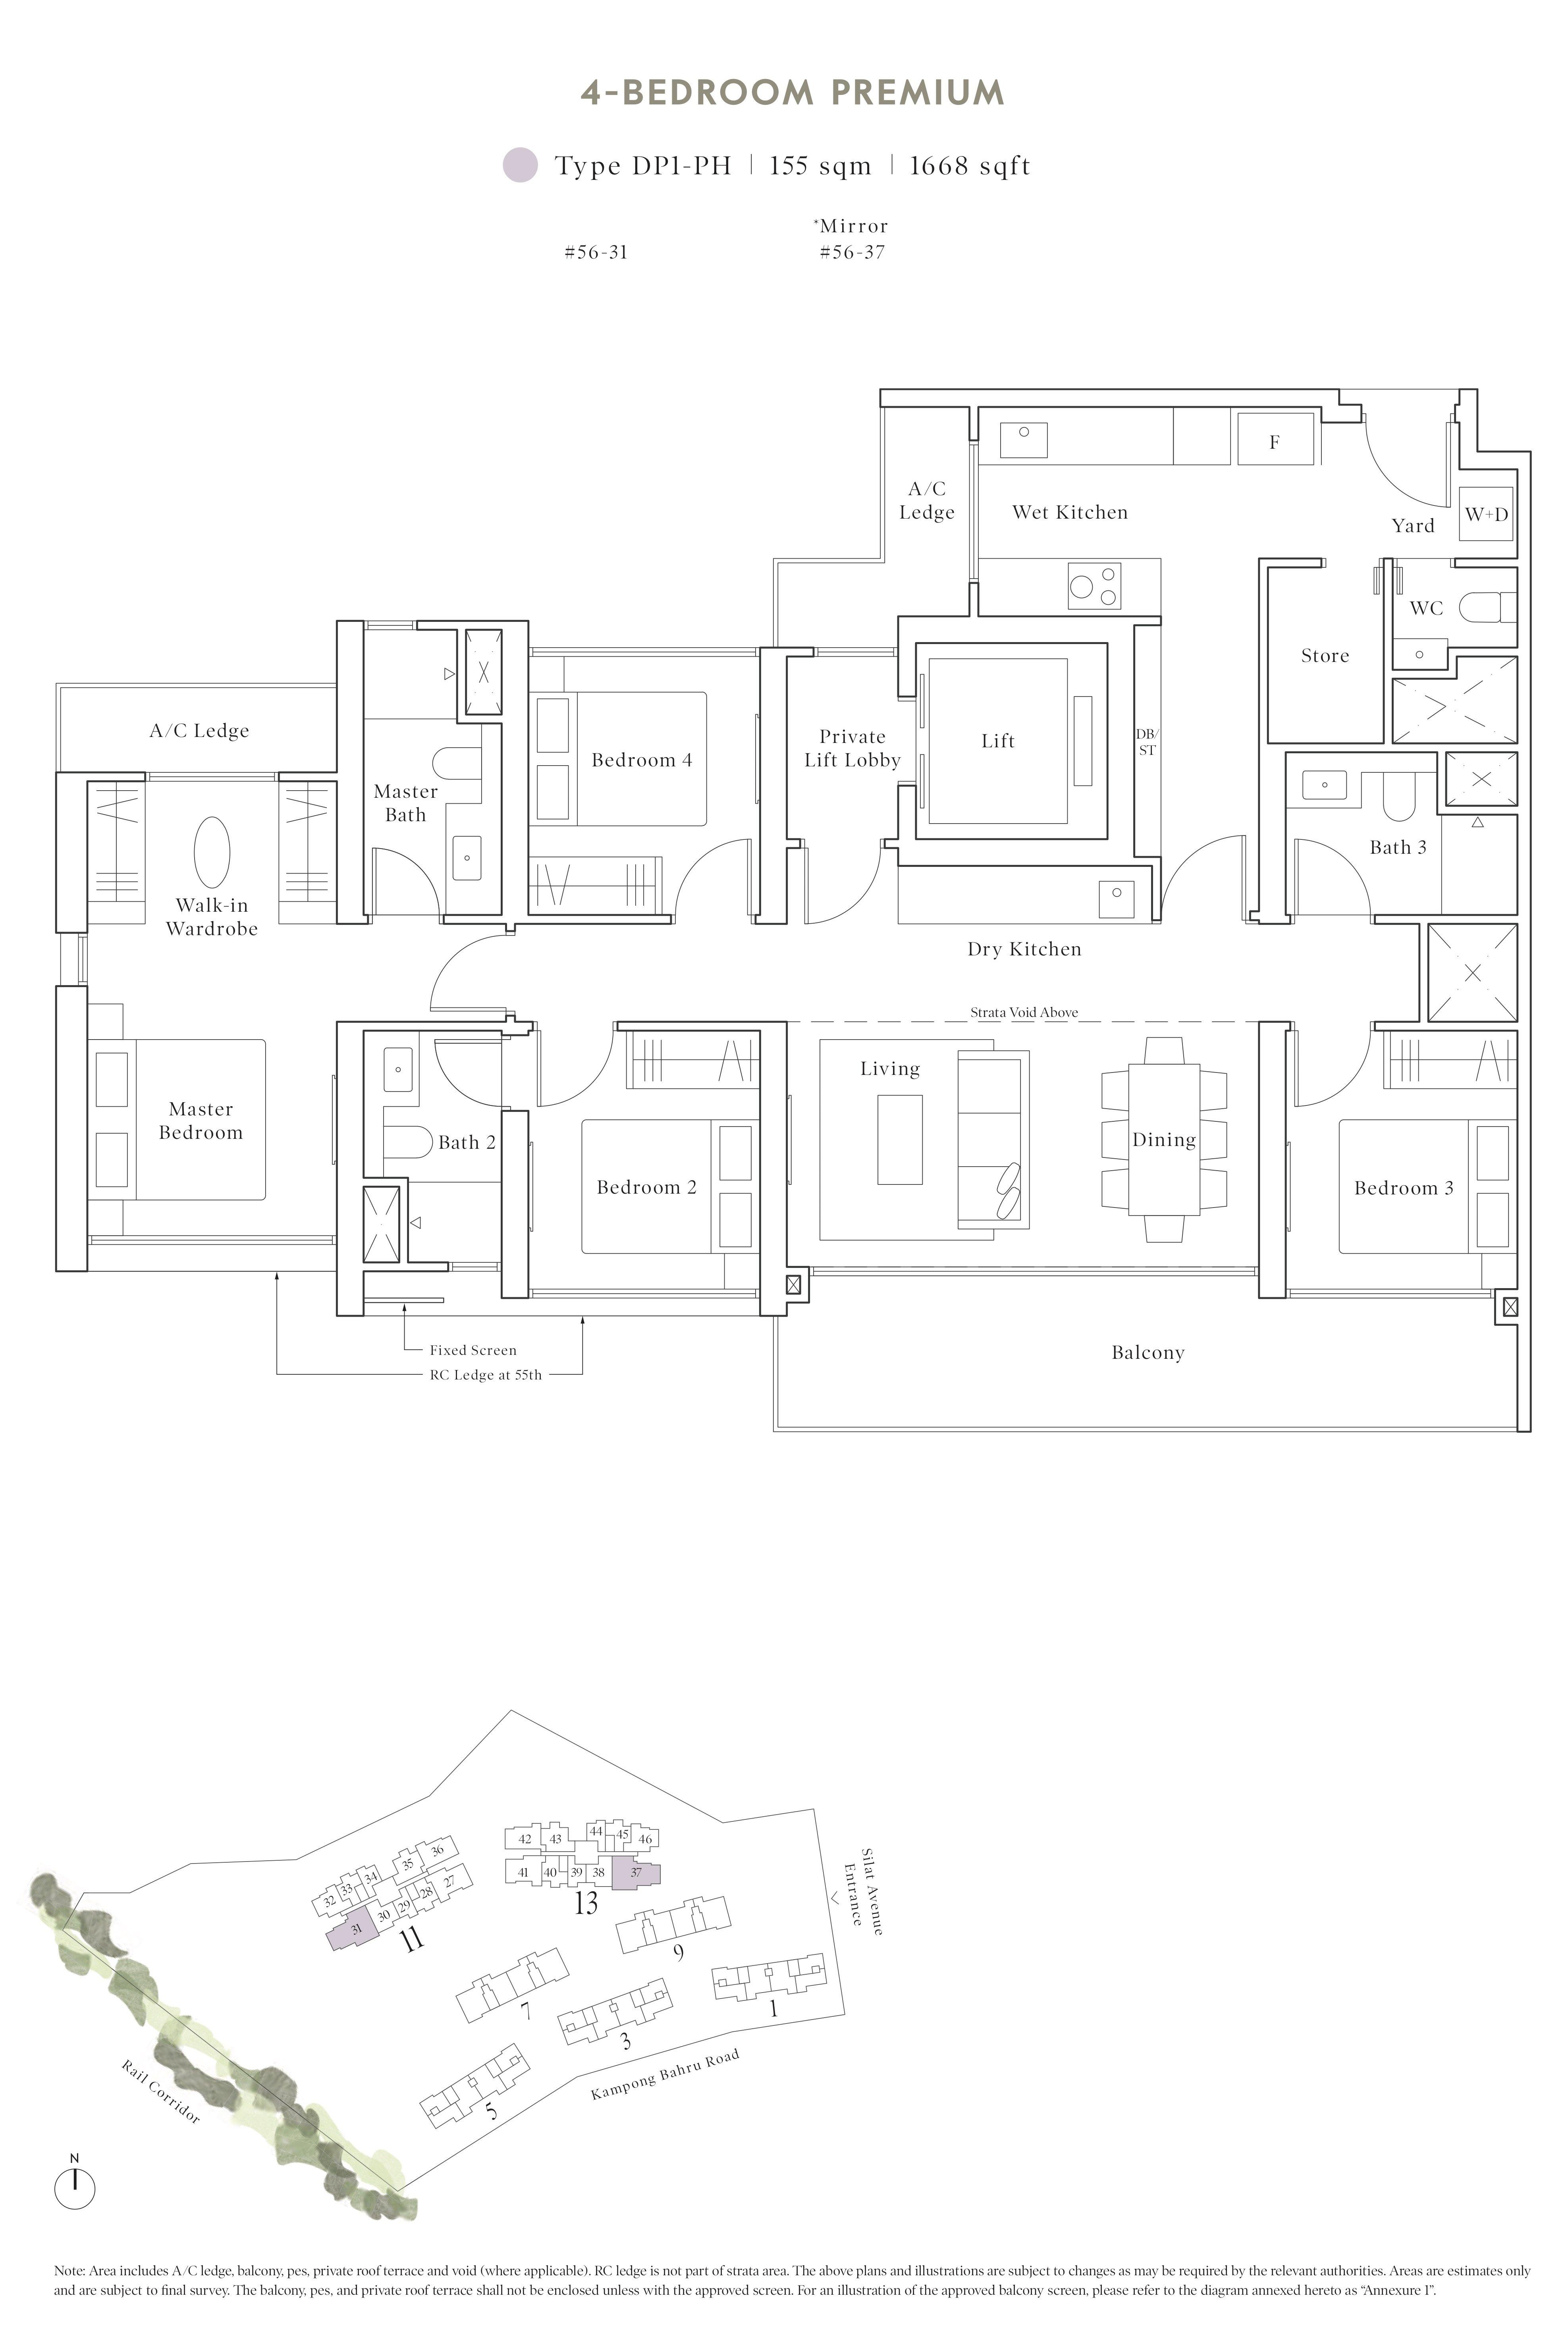 Avenue South Residence 南峰雅苑 peak floor plan 3-bedroom penthouse dp1-ph